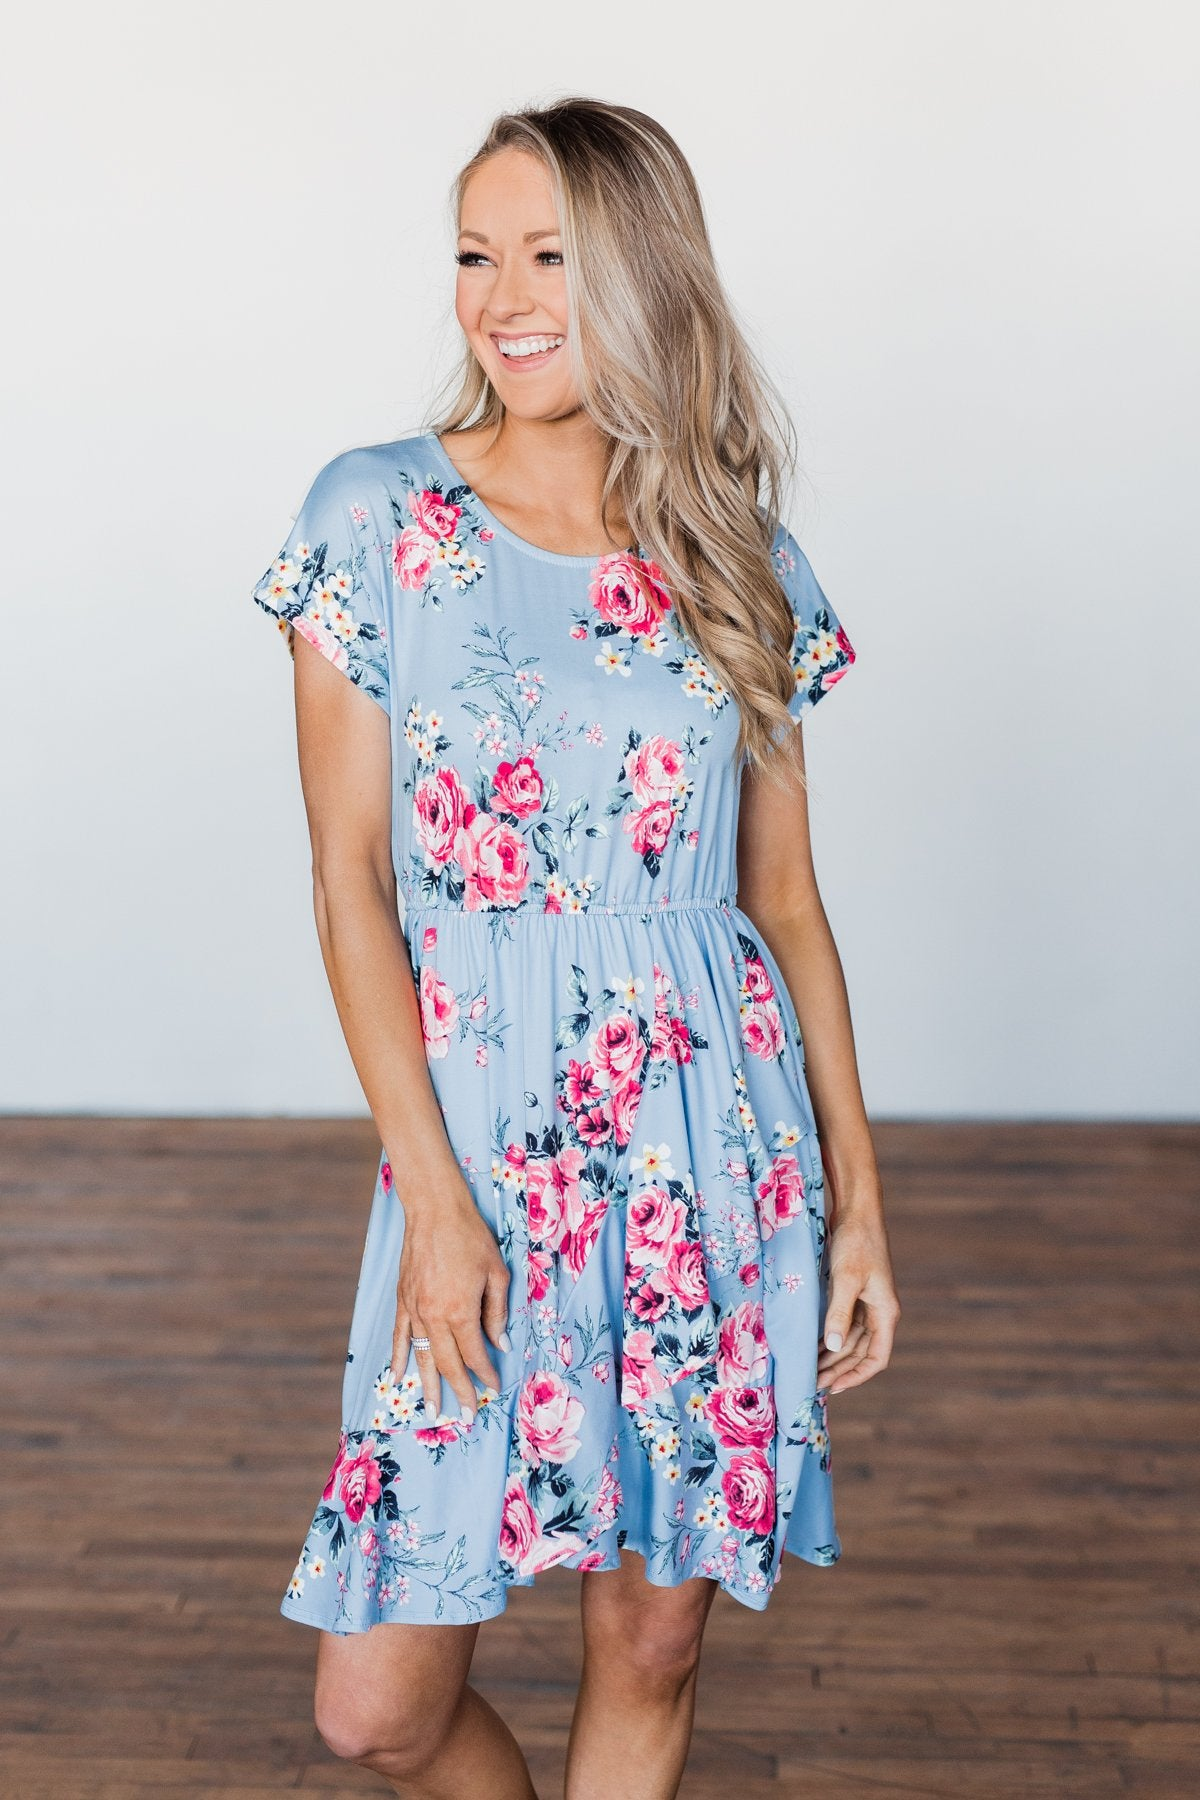 Enchanted Gardens Floral & Ruffle Dress- Baby Blue